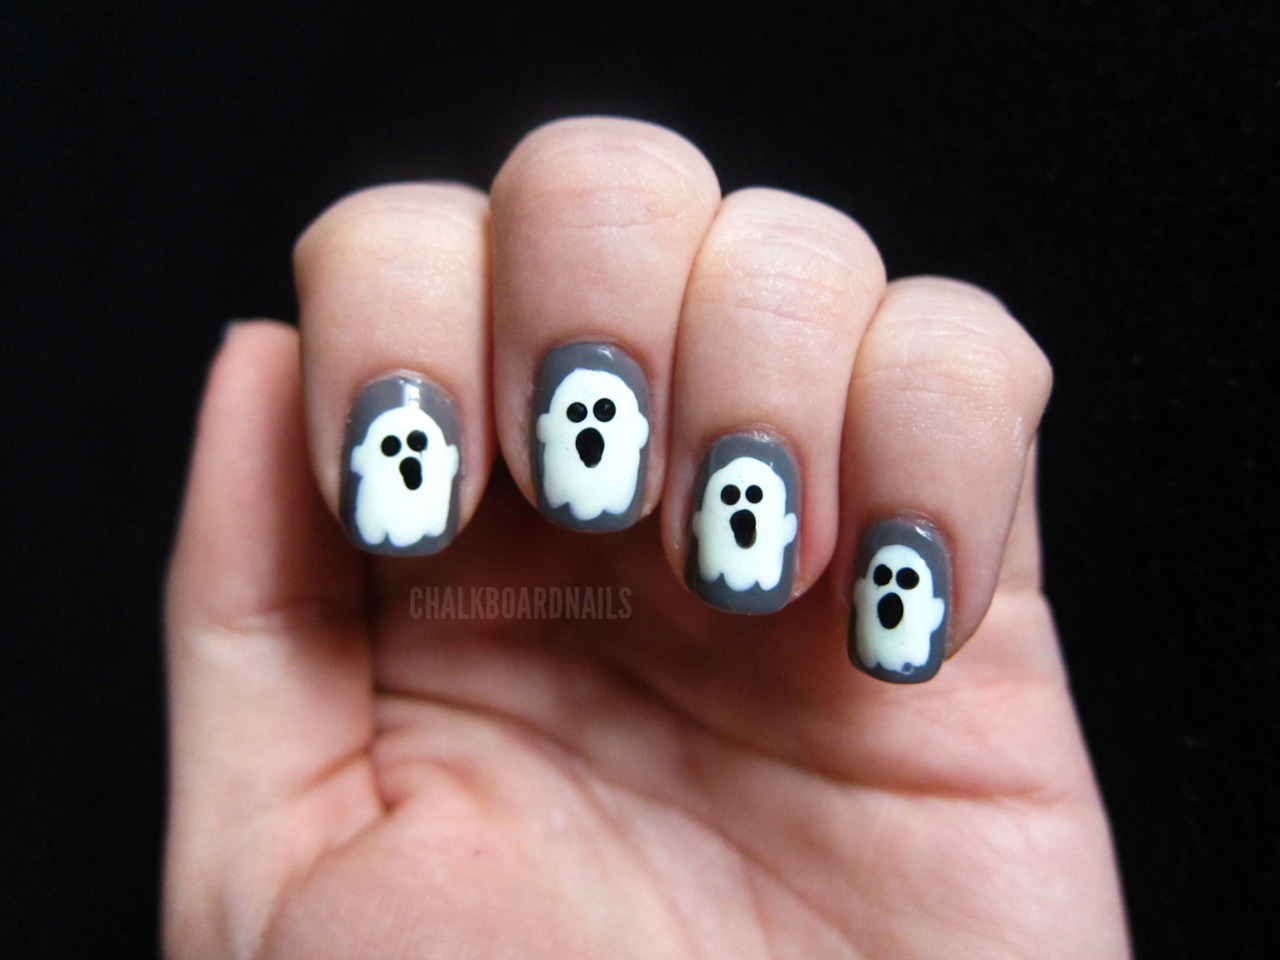 chalkboardnails:  Day 29: Inspired by the supernaturalInspired by ghosts China Glaze RecycleChina Glaze White On WhiteChina Glaze Ghoulish Glow TopcoatWet N Wild Ink Well  Happy Halloween!